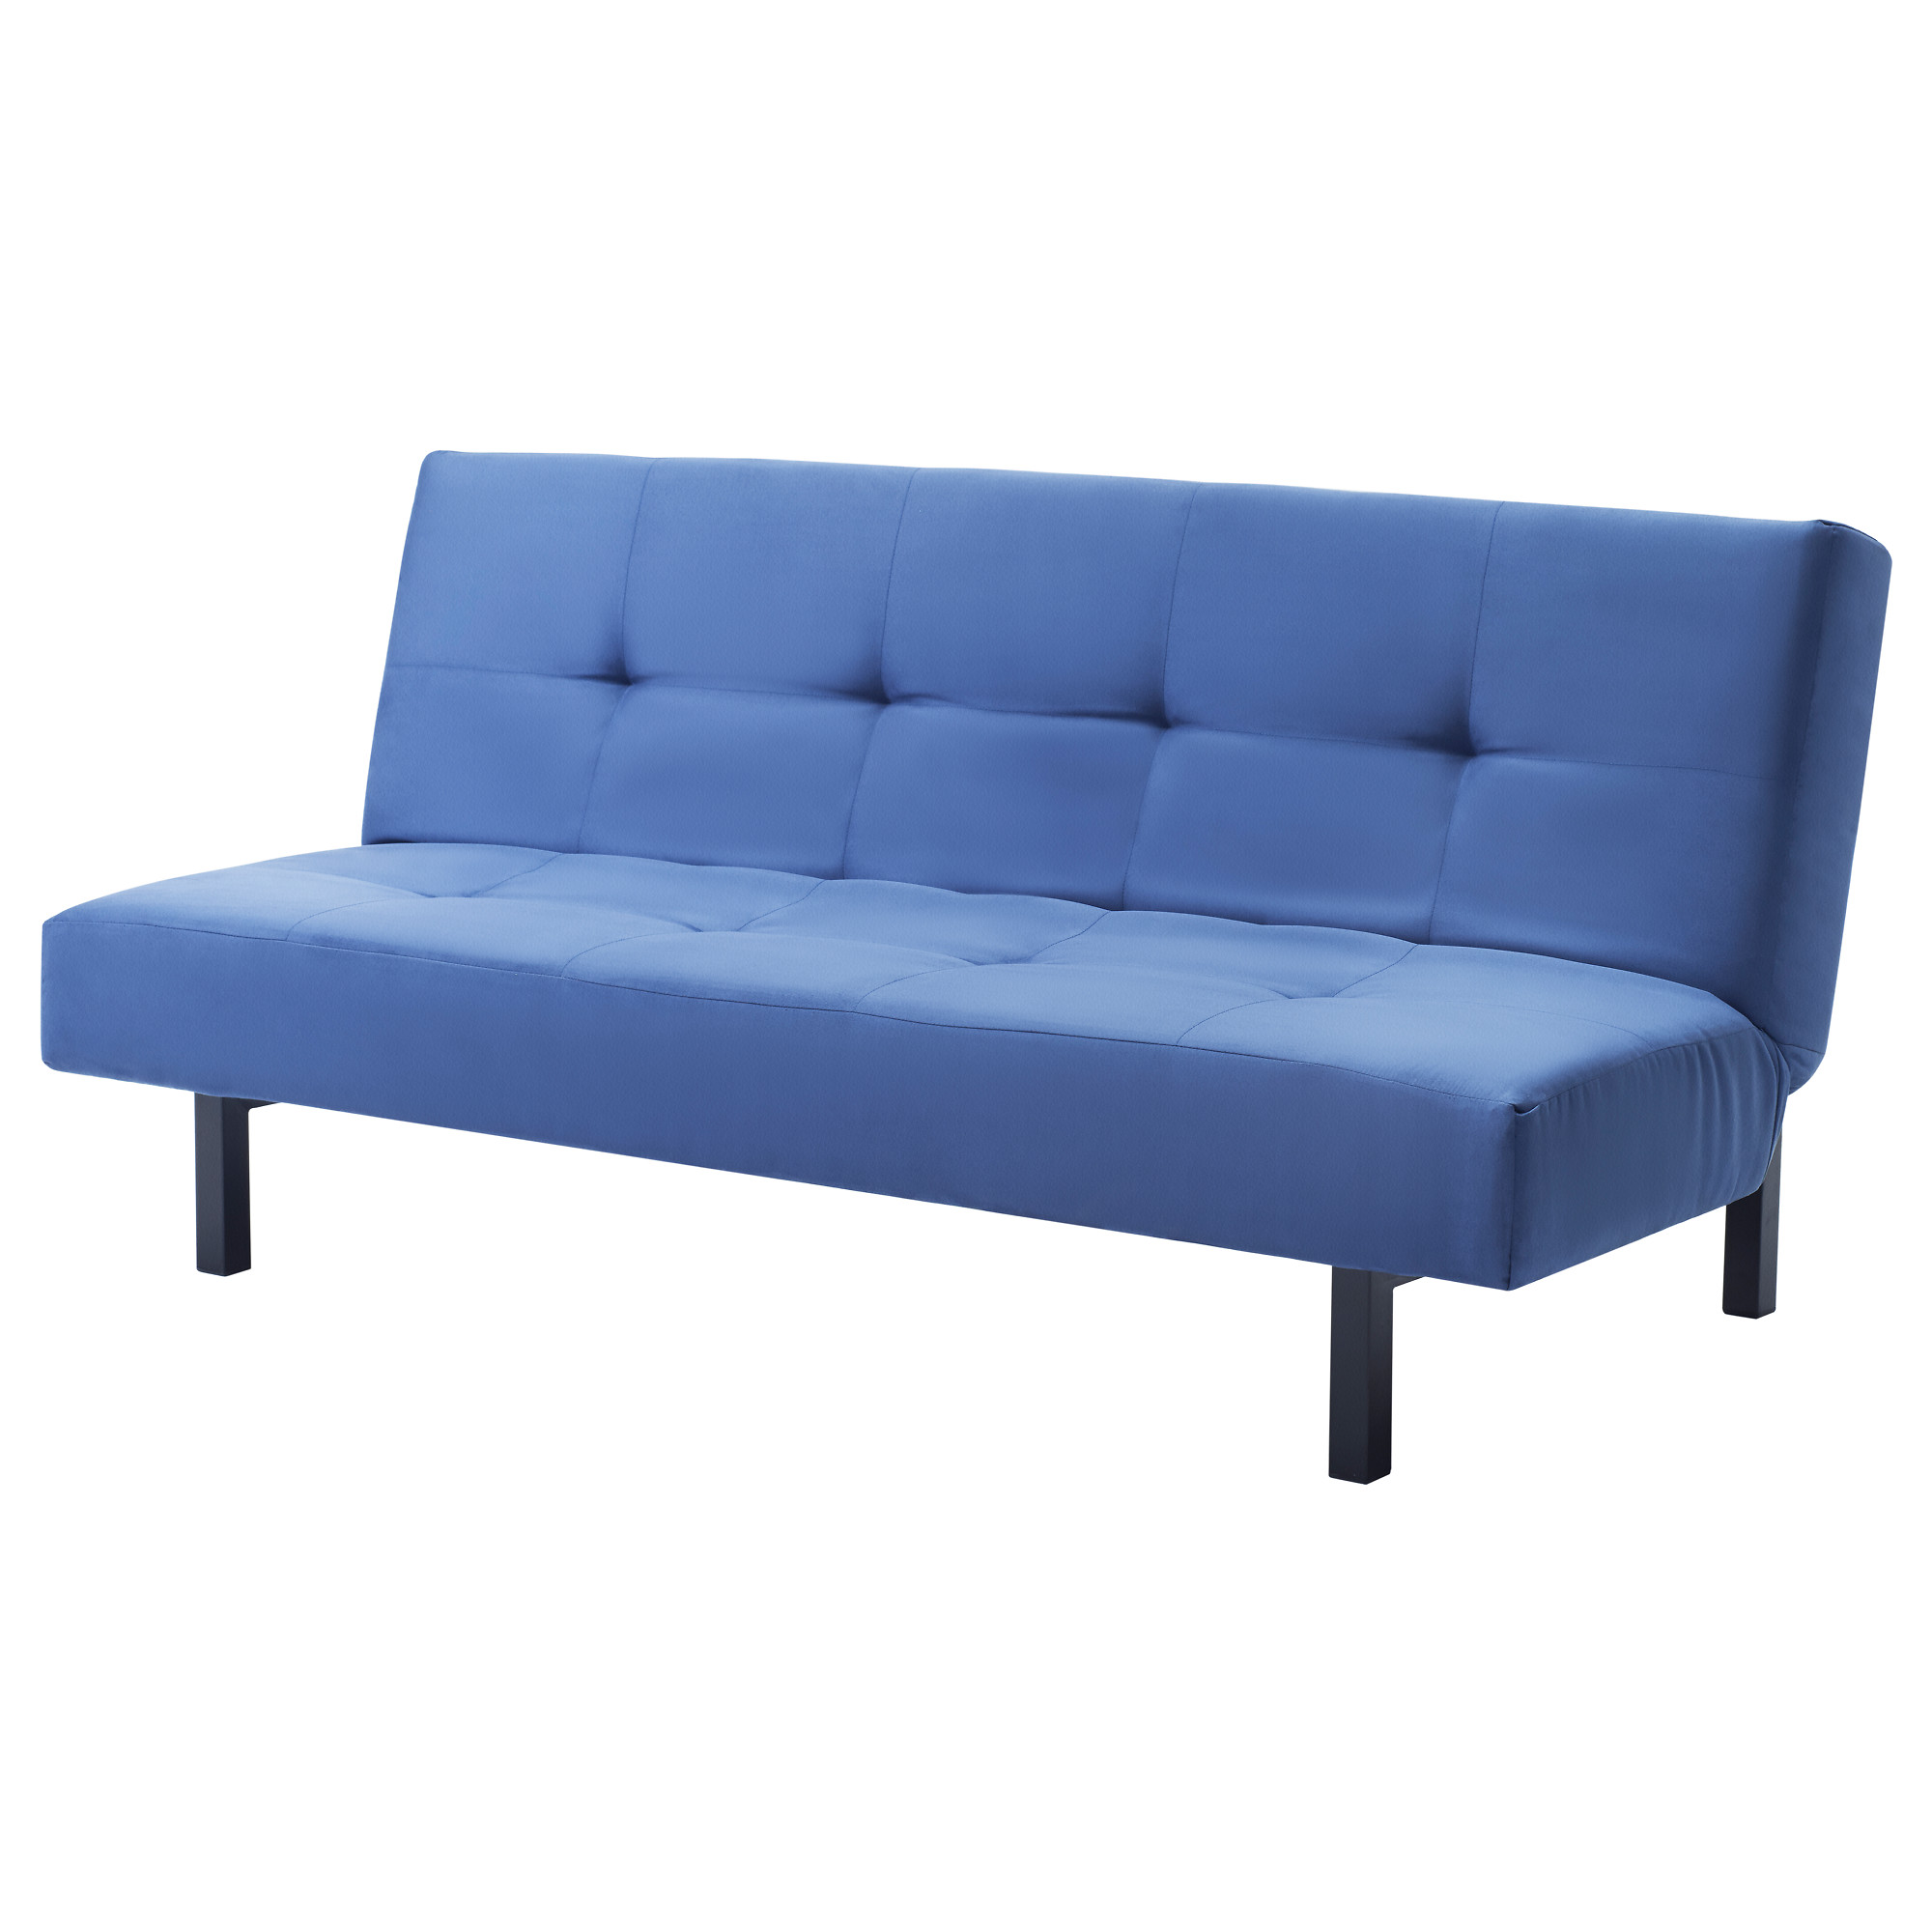 Best sofa sleepers ikea homesfeed for Chair that turns into a bed ikea